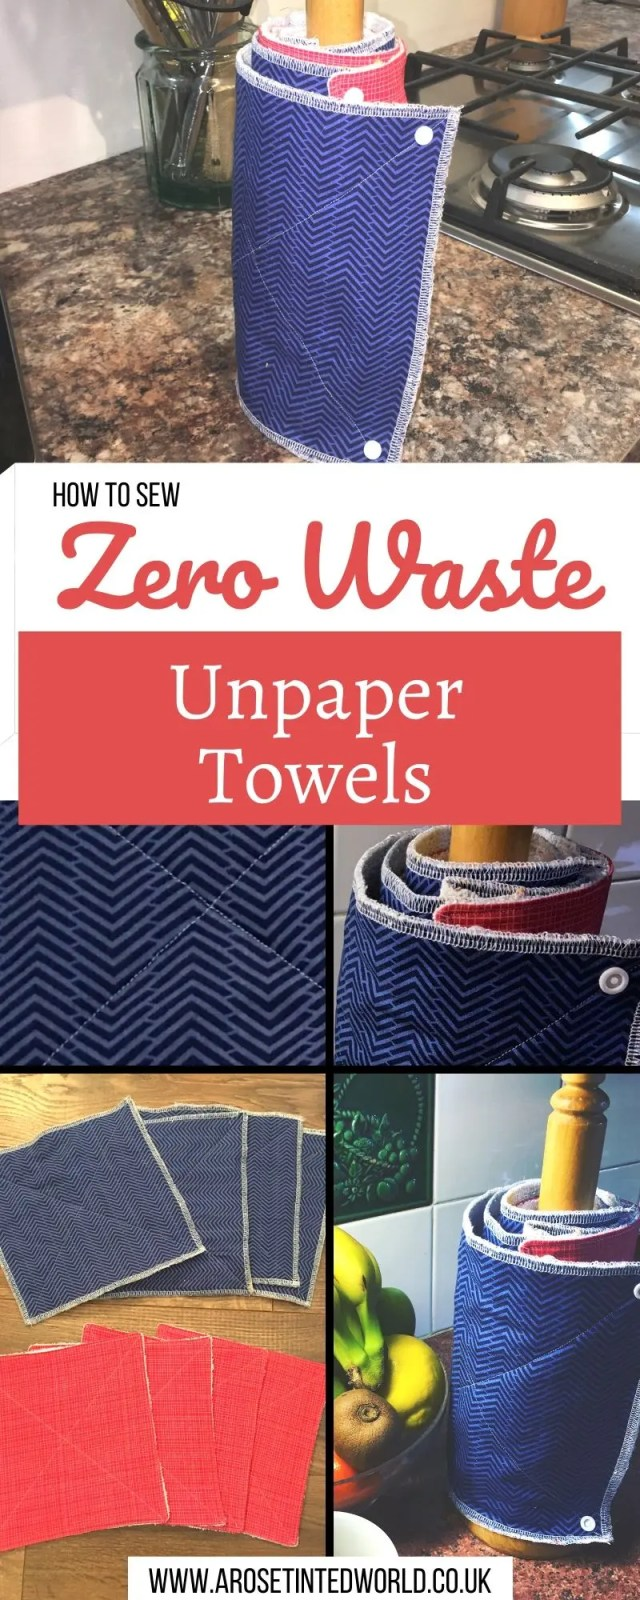 How To Make Reusable kitchen roll or unpaper towels - a great alternative to paper towels. A great zero waste, frugal and sustainable kitchen swap. Upcycle old clothes, towels and cloth to make these cloths that can be laundered with the rest of your wash. DIY tutorial with pictures. Pictorial guide to making these sustainable recycled . Environmentally friendly #unpapertowels #kitchentowels #upcycling #sustainable #zerowaste